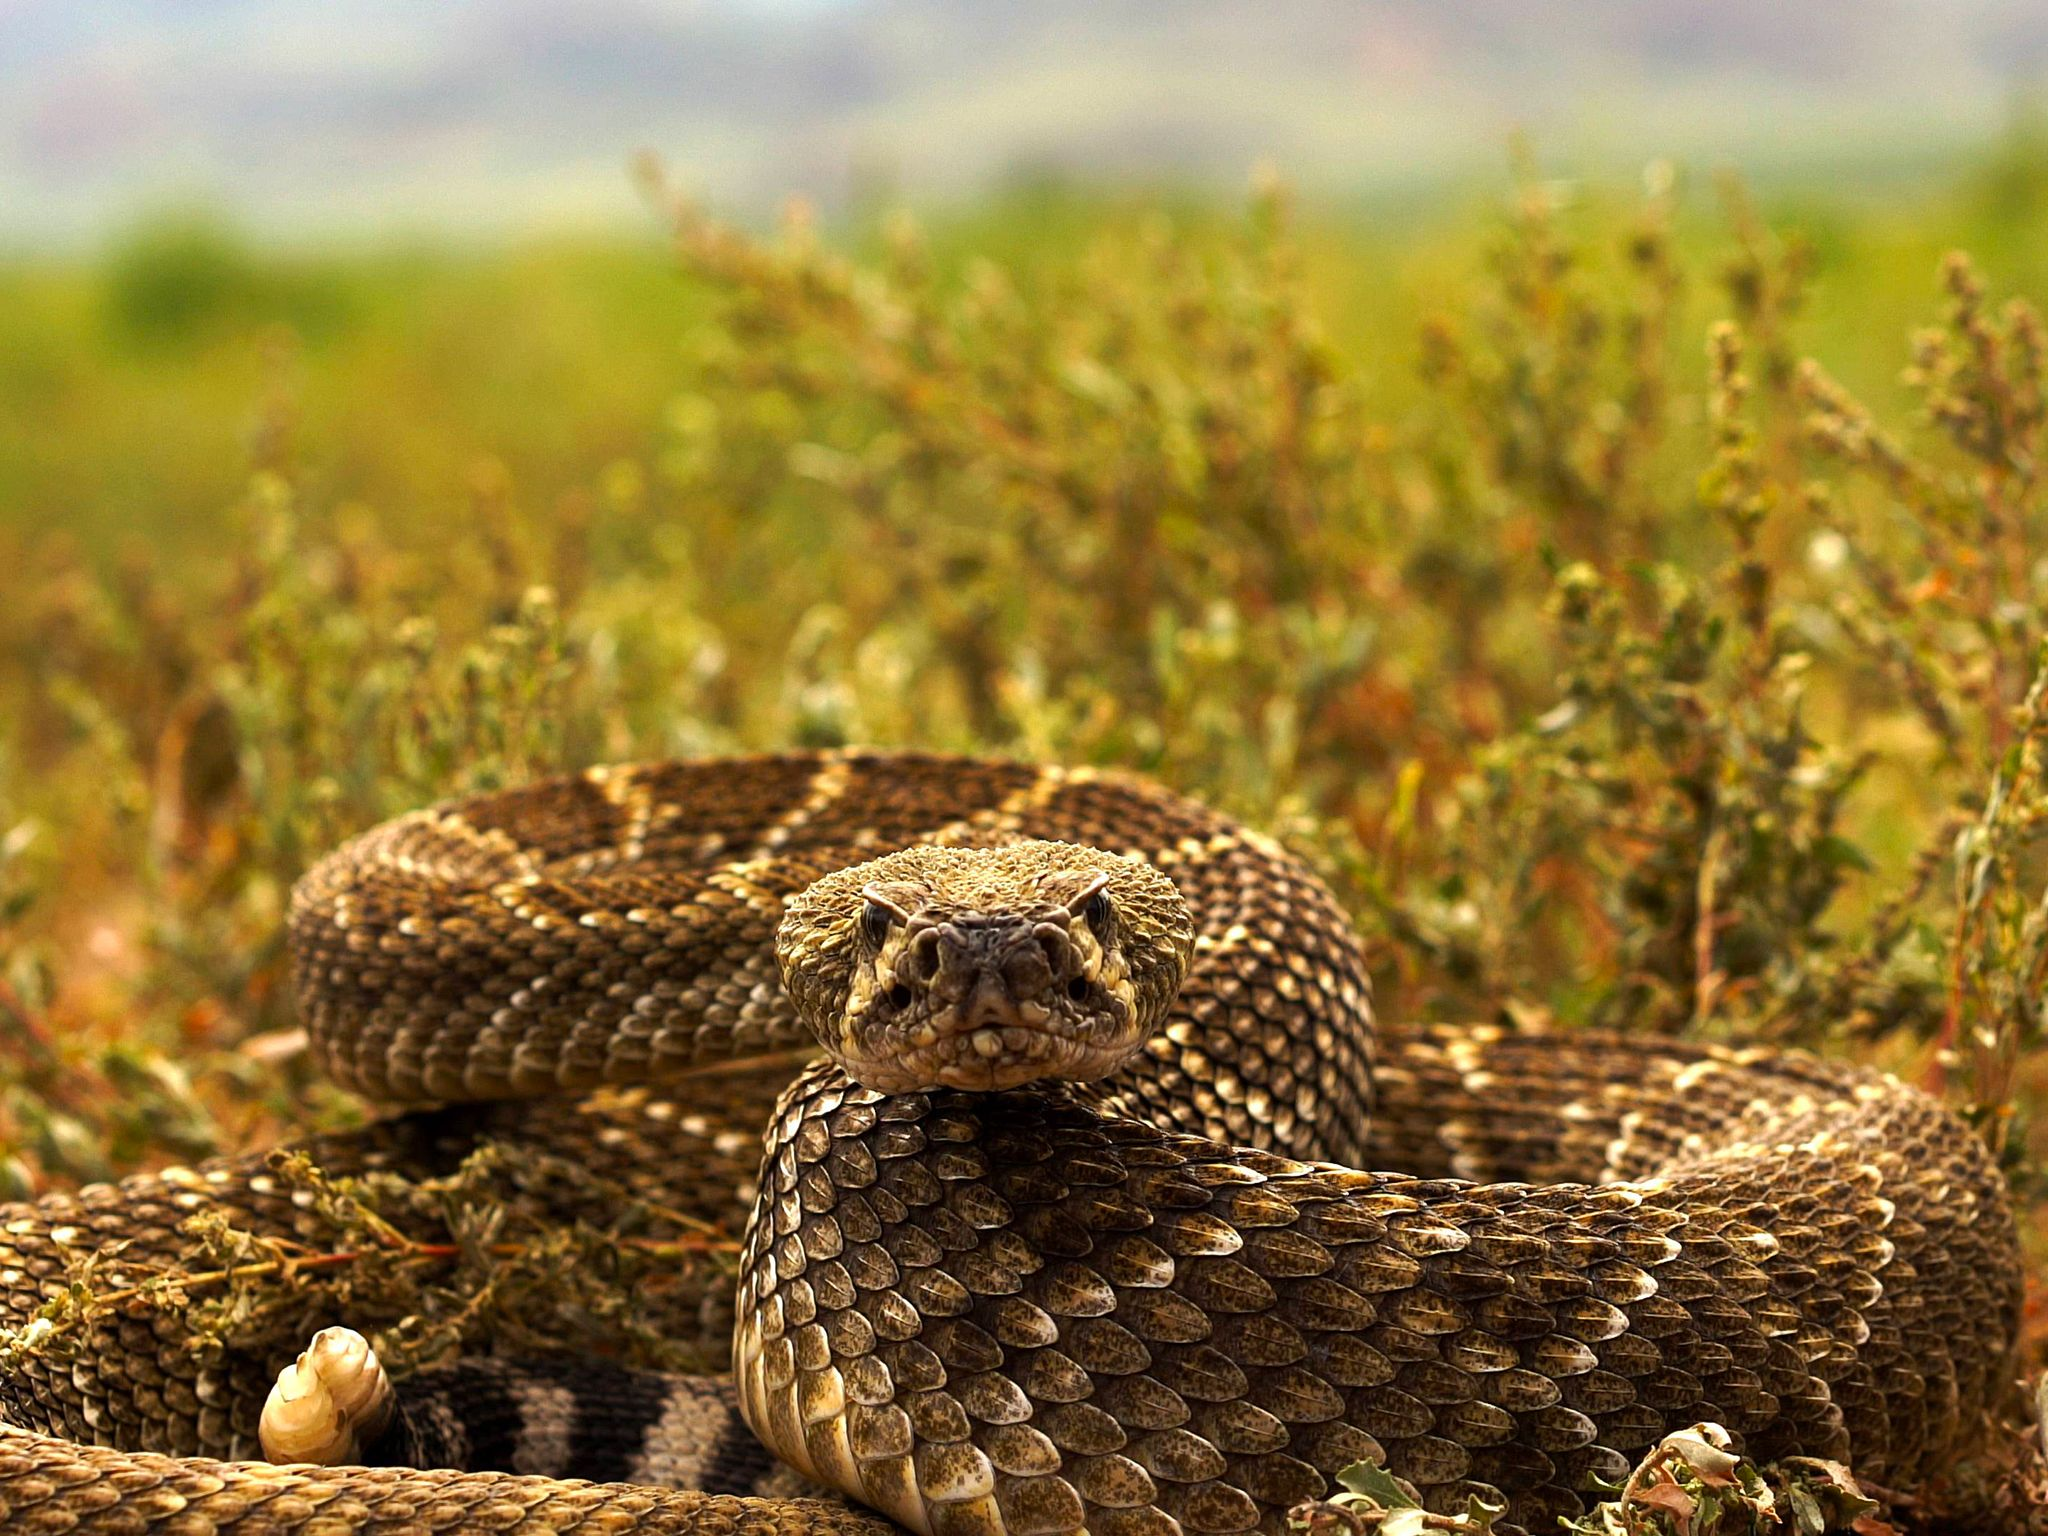 Arizona: Western diamondback rattlesnake in strike pose. This image is from Viper Queens. [Photo of the day - سپتامبر 2016]